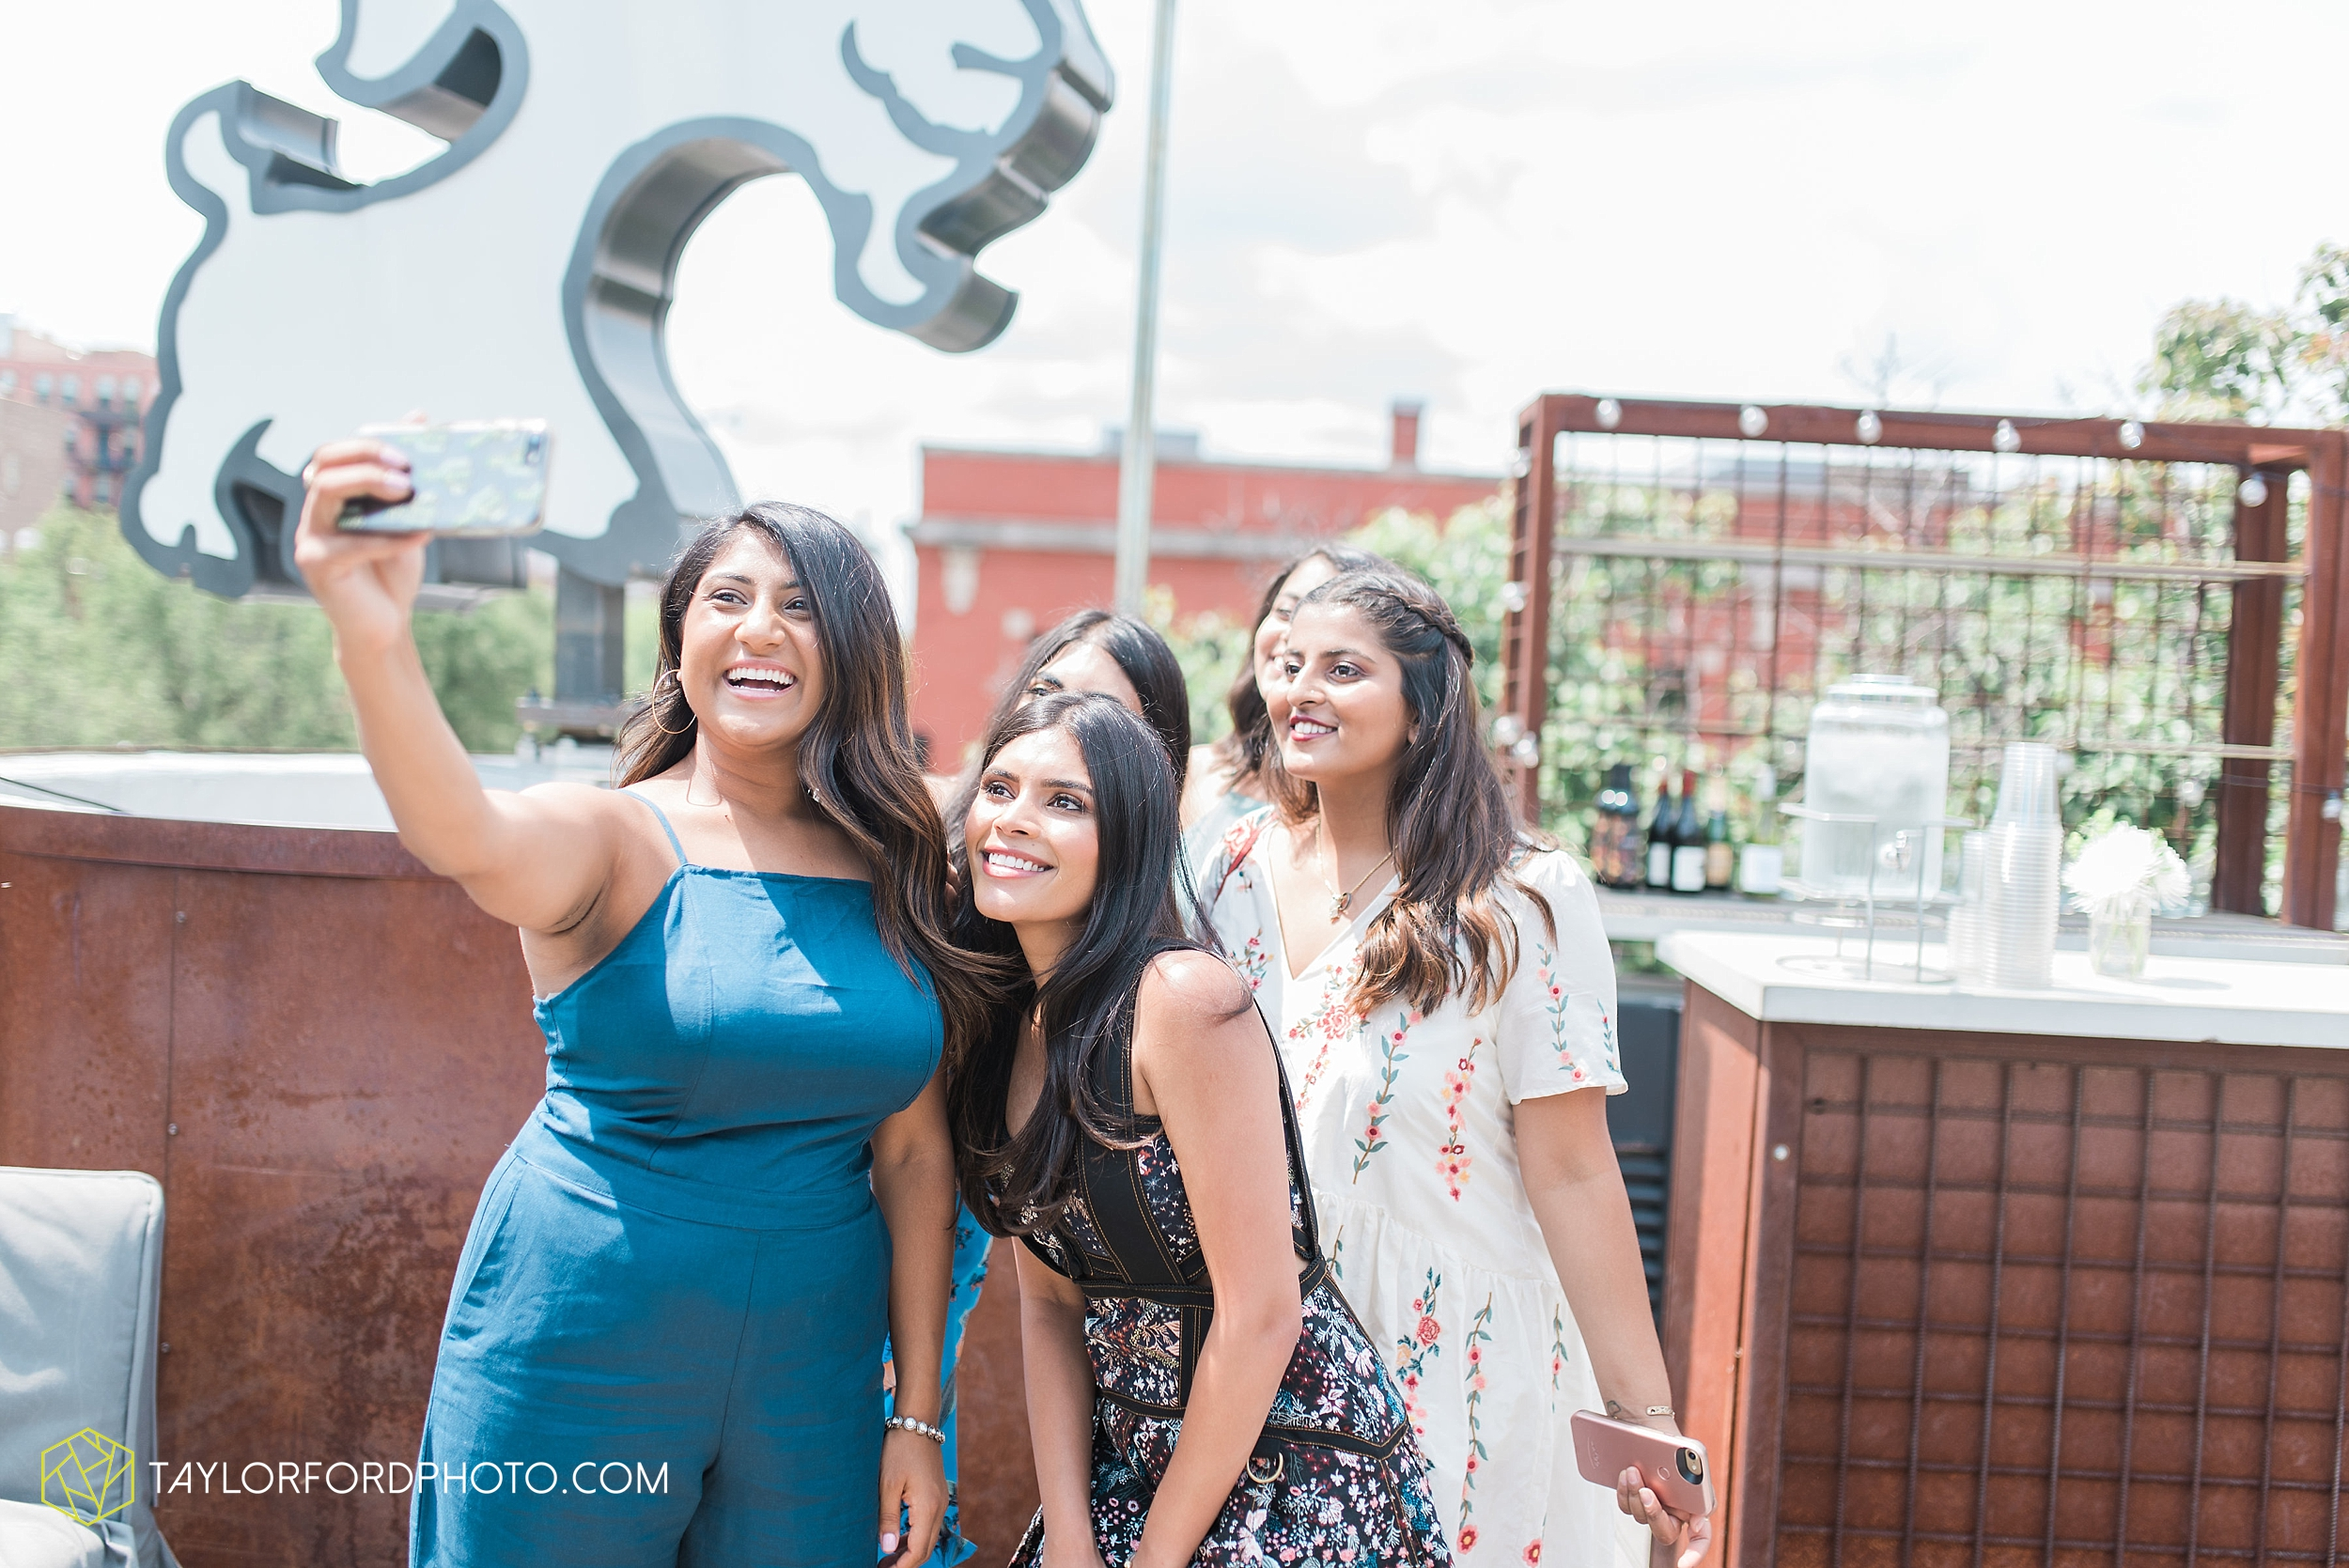 chicago-illinois-bridal-shower-wedding-engagement-photographer-Taylor-Ford-Photography-the-little-goat-diner-rooftop-indian-ceremony_5095.jpg